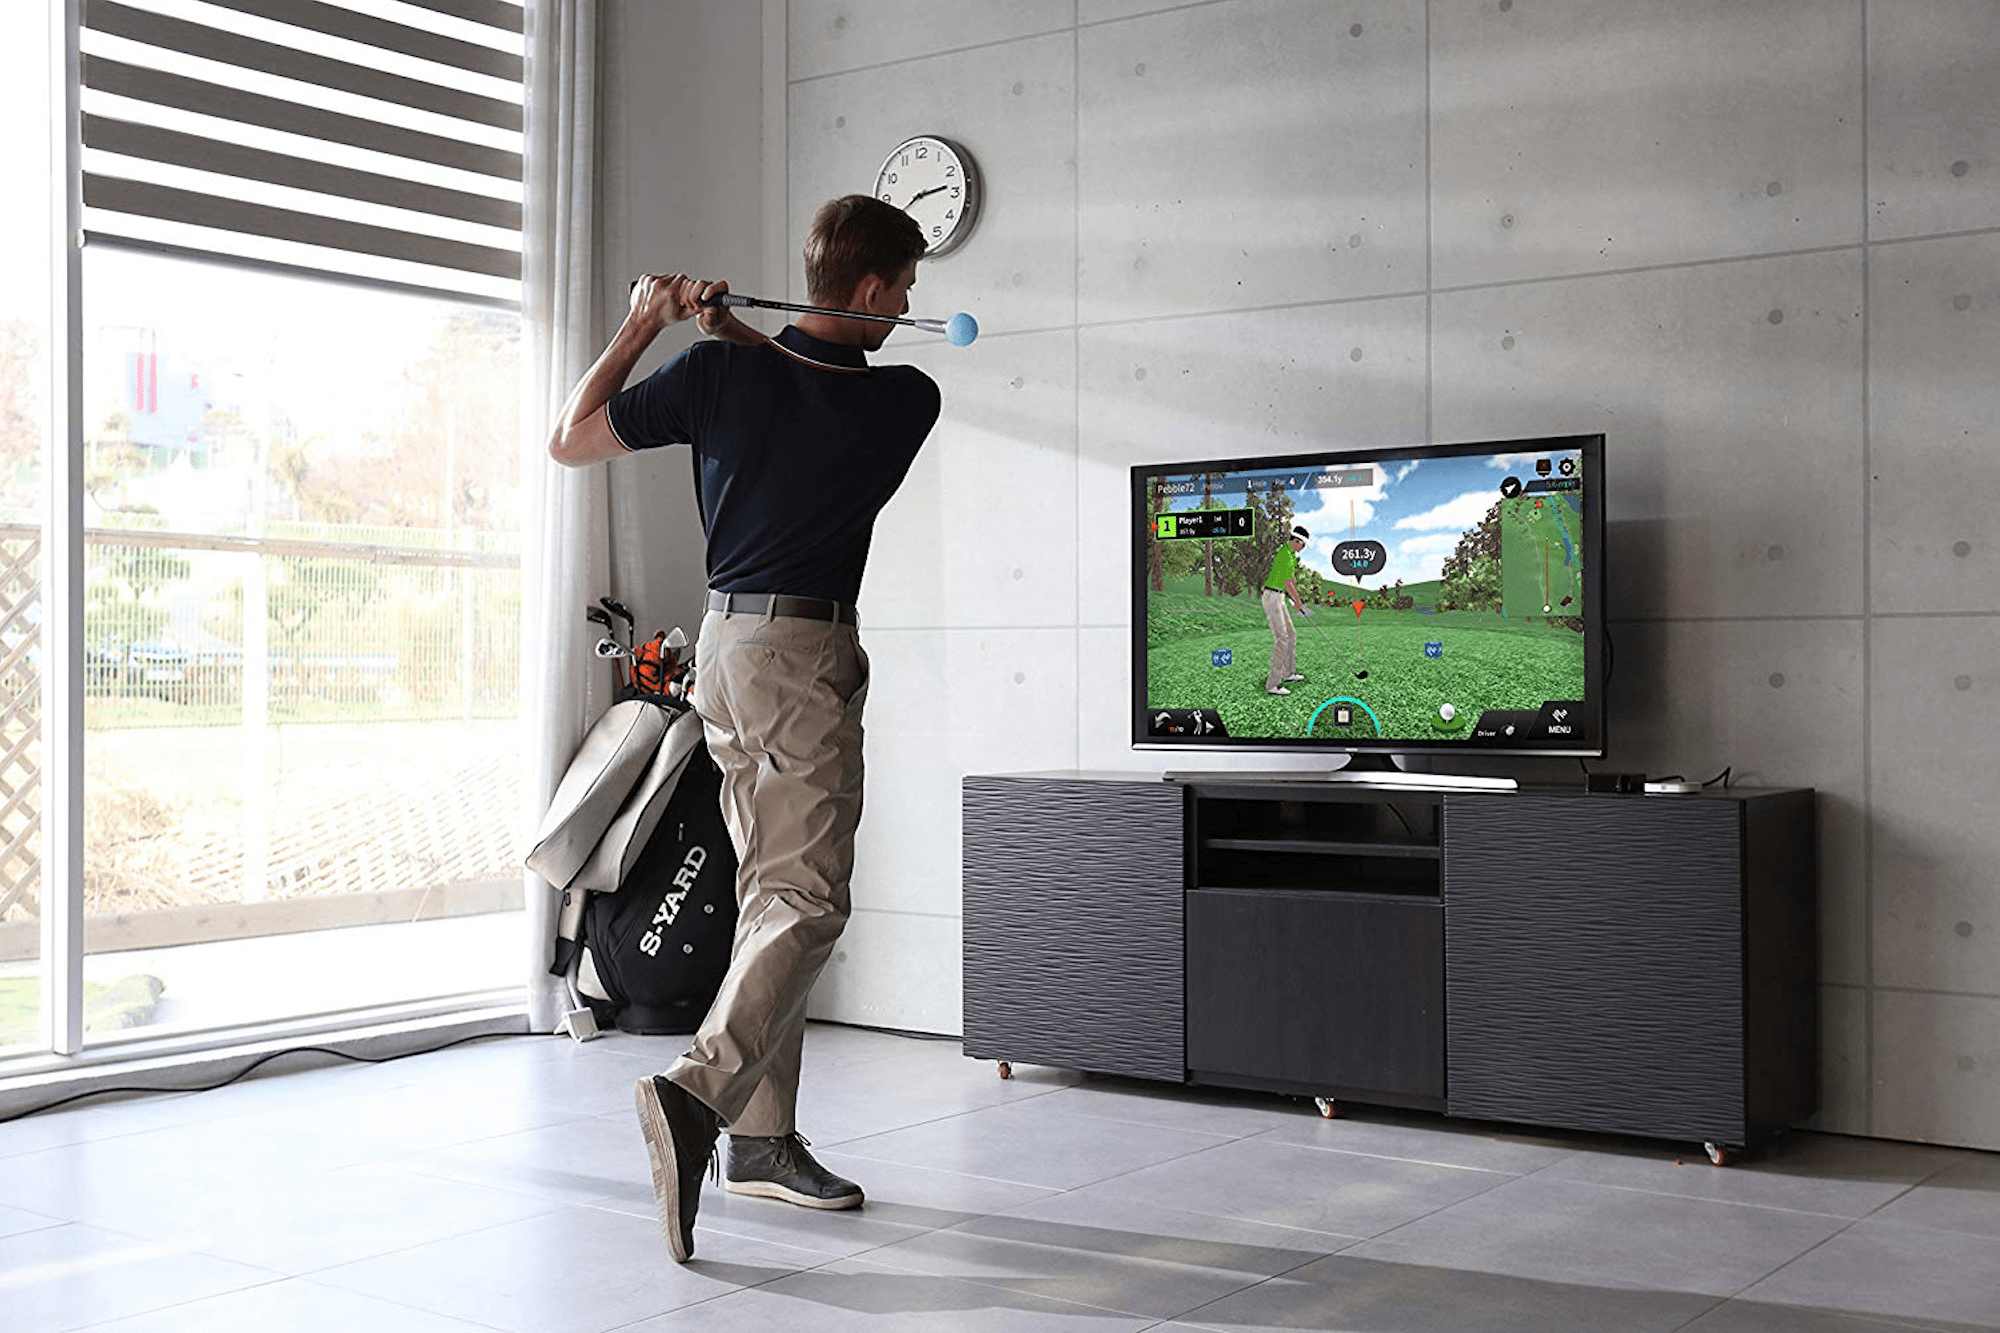 You Can Still Keep Up Your Golf Game While in Quarantine with This Simulator